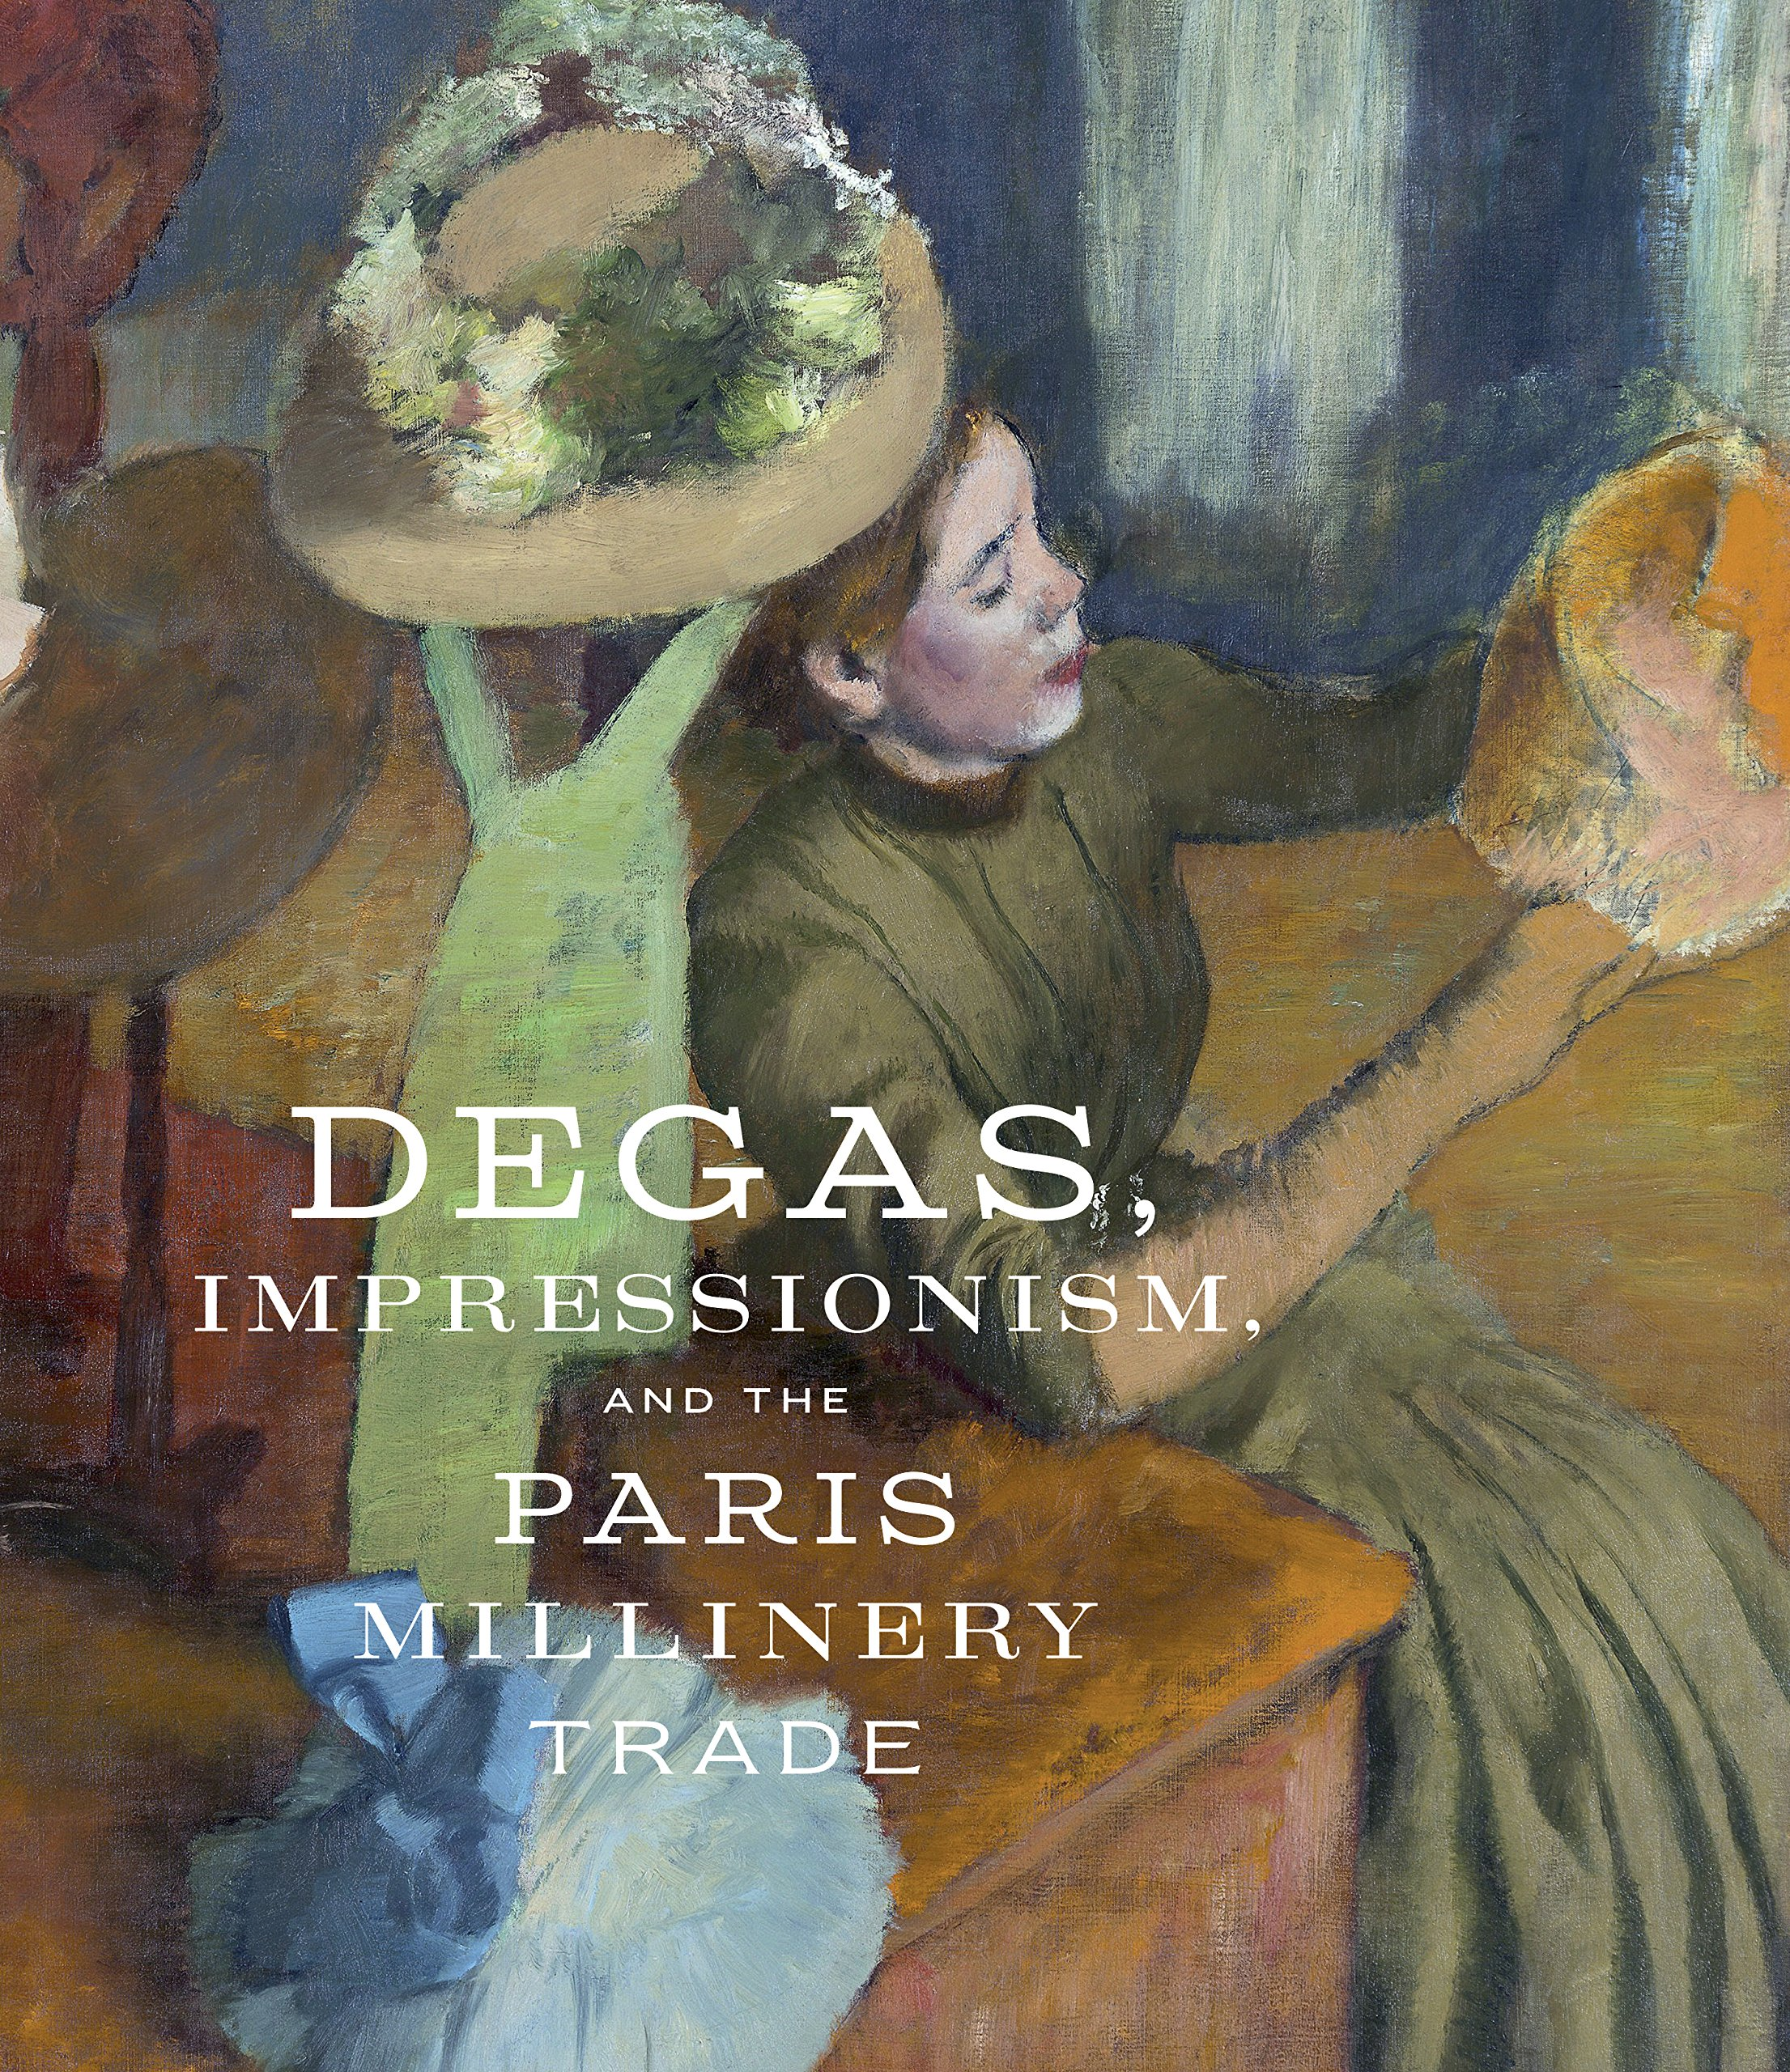 Impressionism Paris: Art History News: Degas, Impressionism, And The Paris